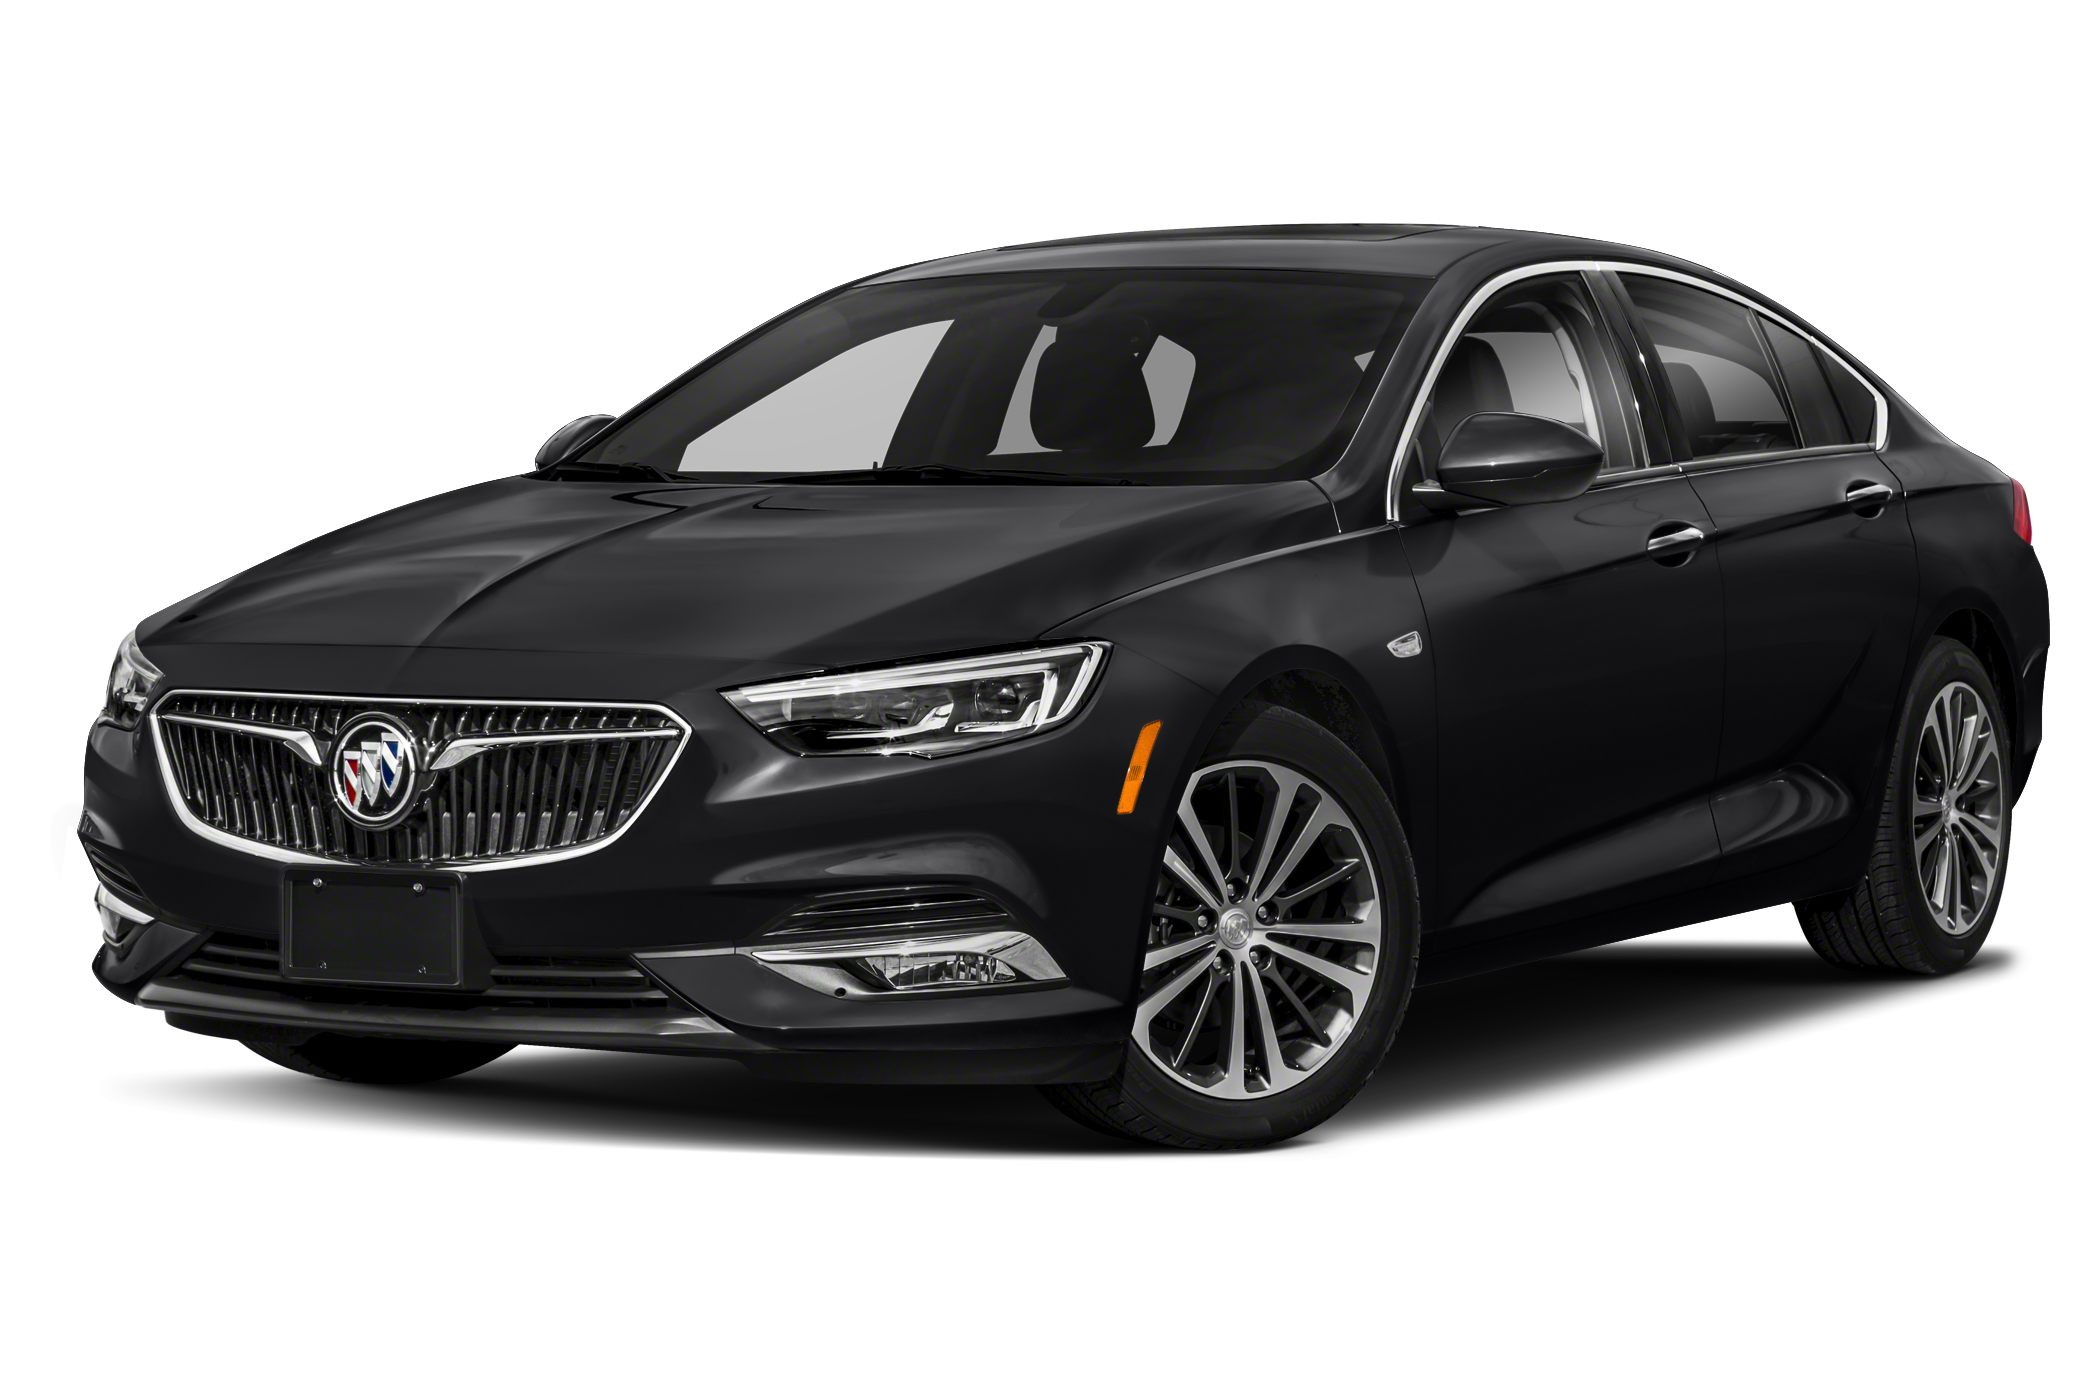 2020 Buick Regal Picture